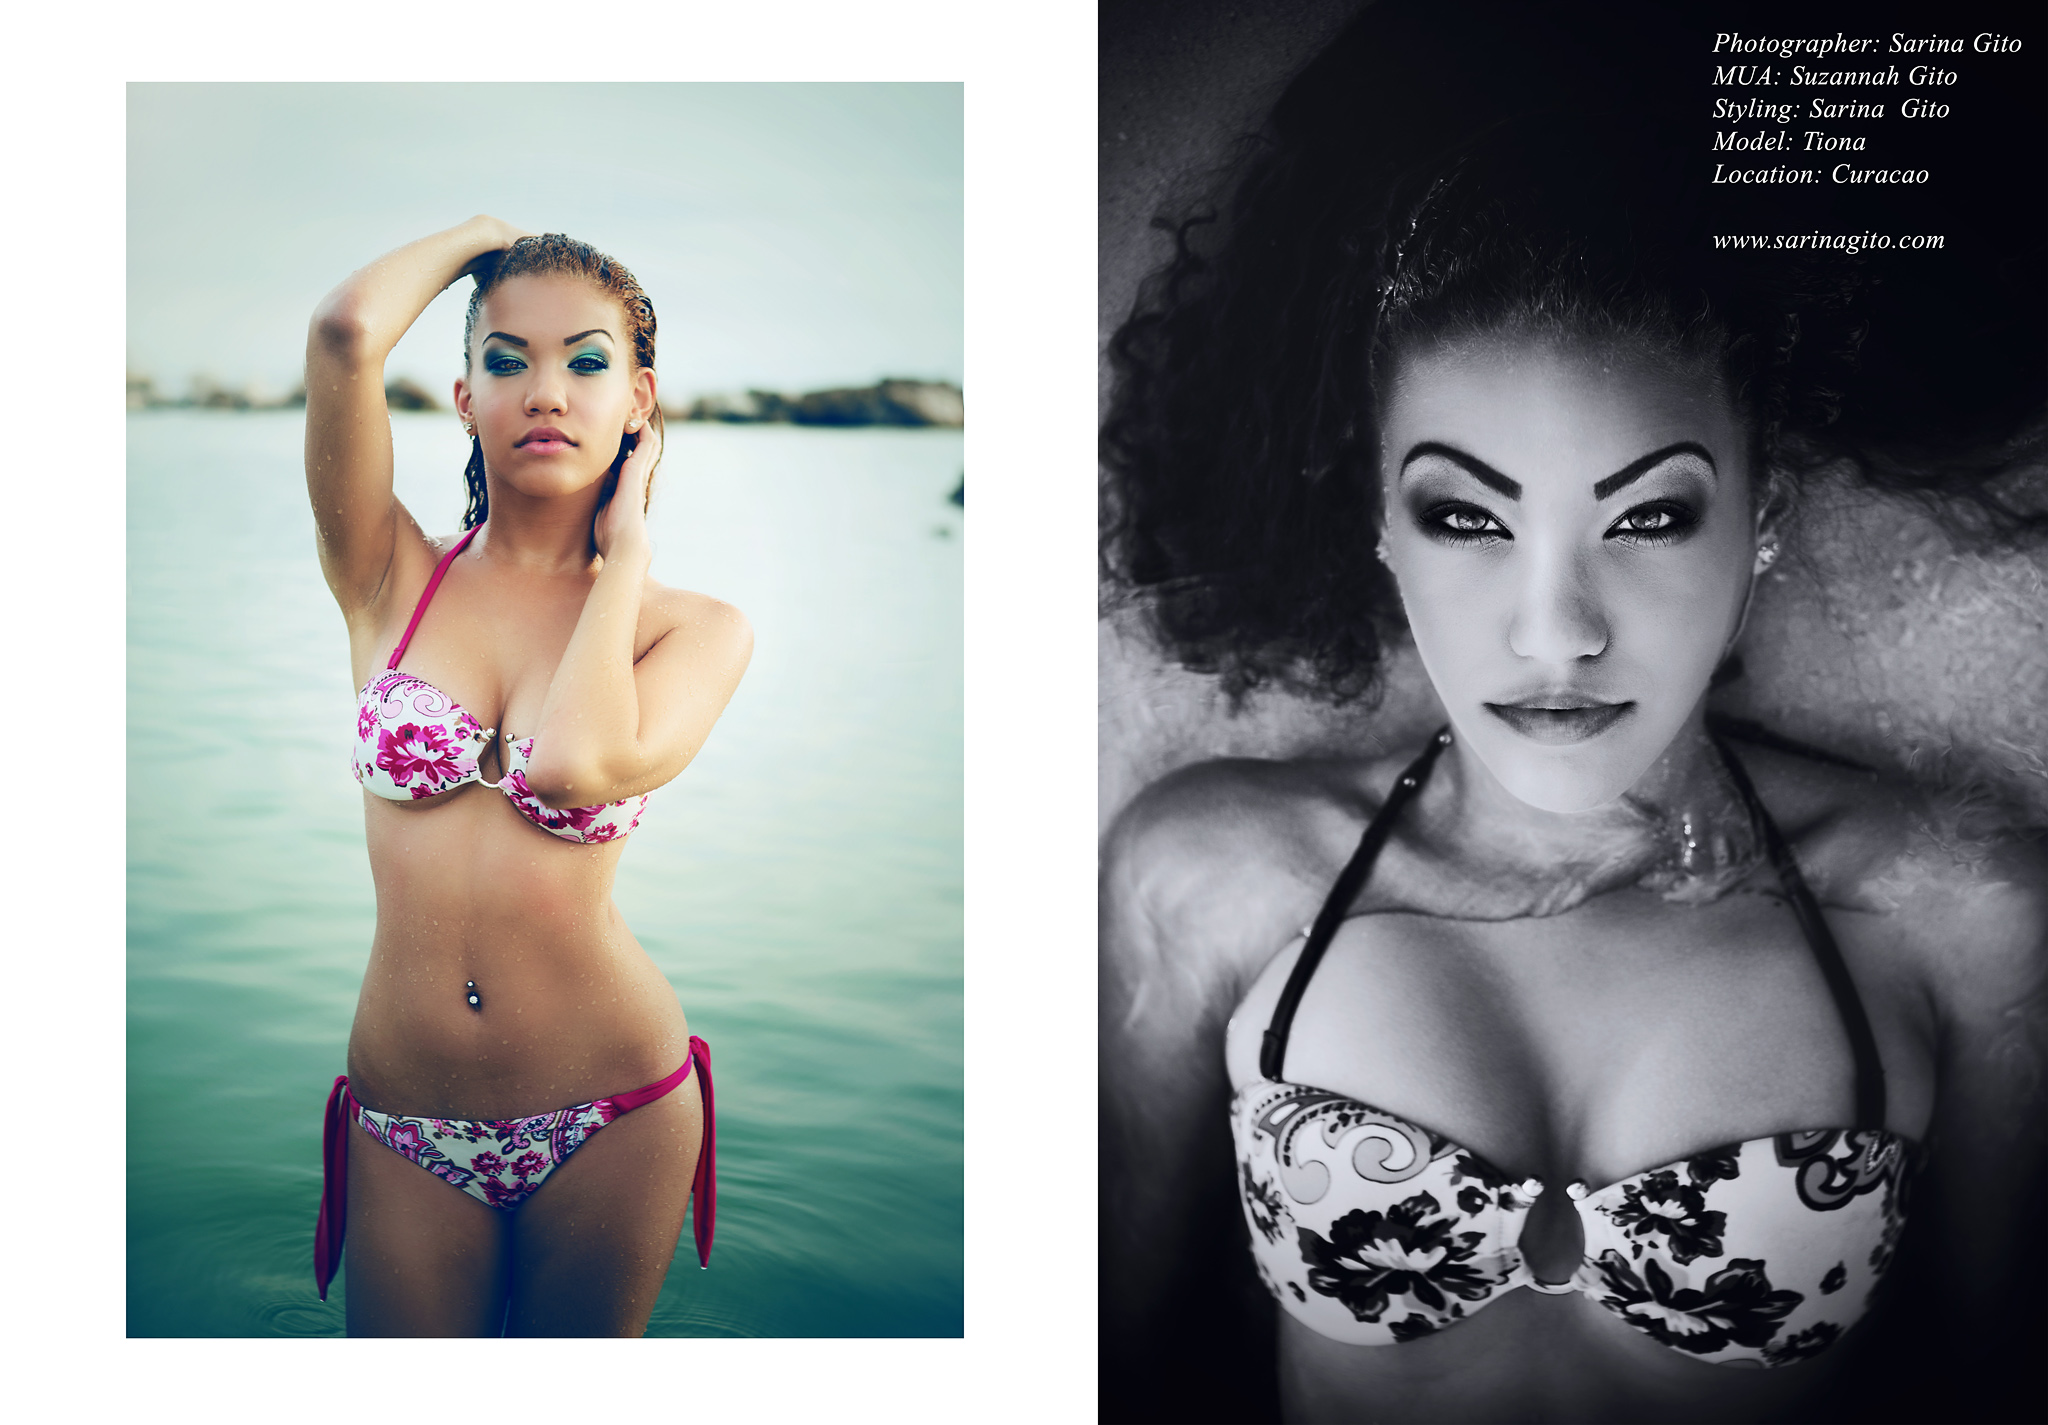 Photographer/PostProcessing: Sarina Gito | MakeUpArtist: Sue Gee | Model: Tiona. 2012. Curacao